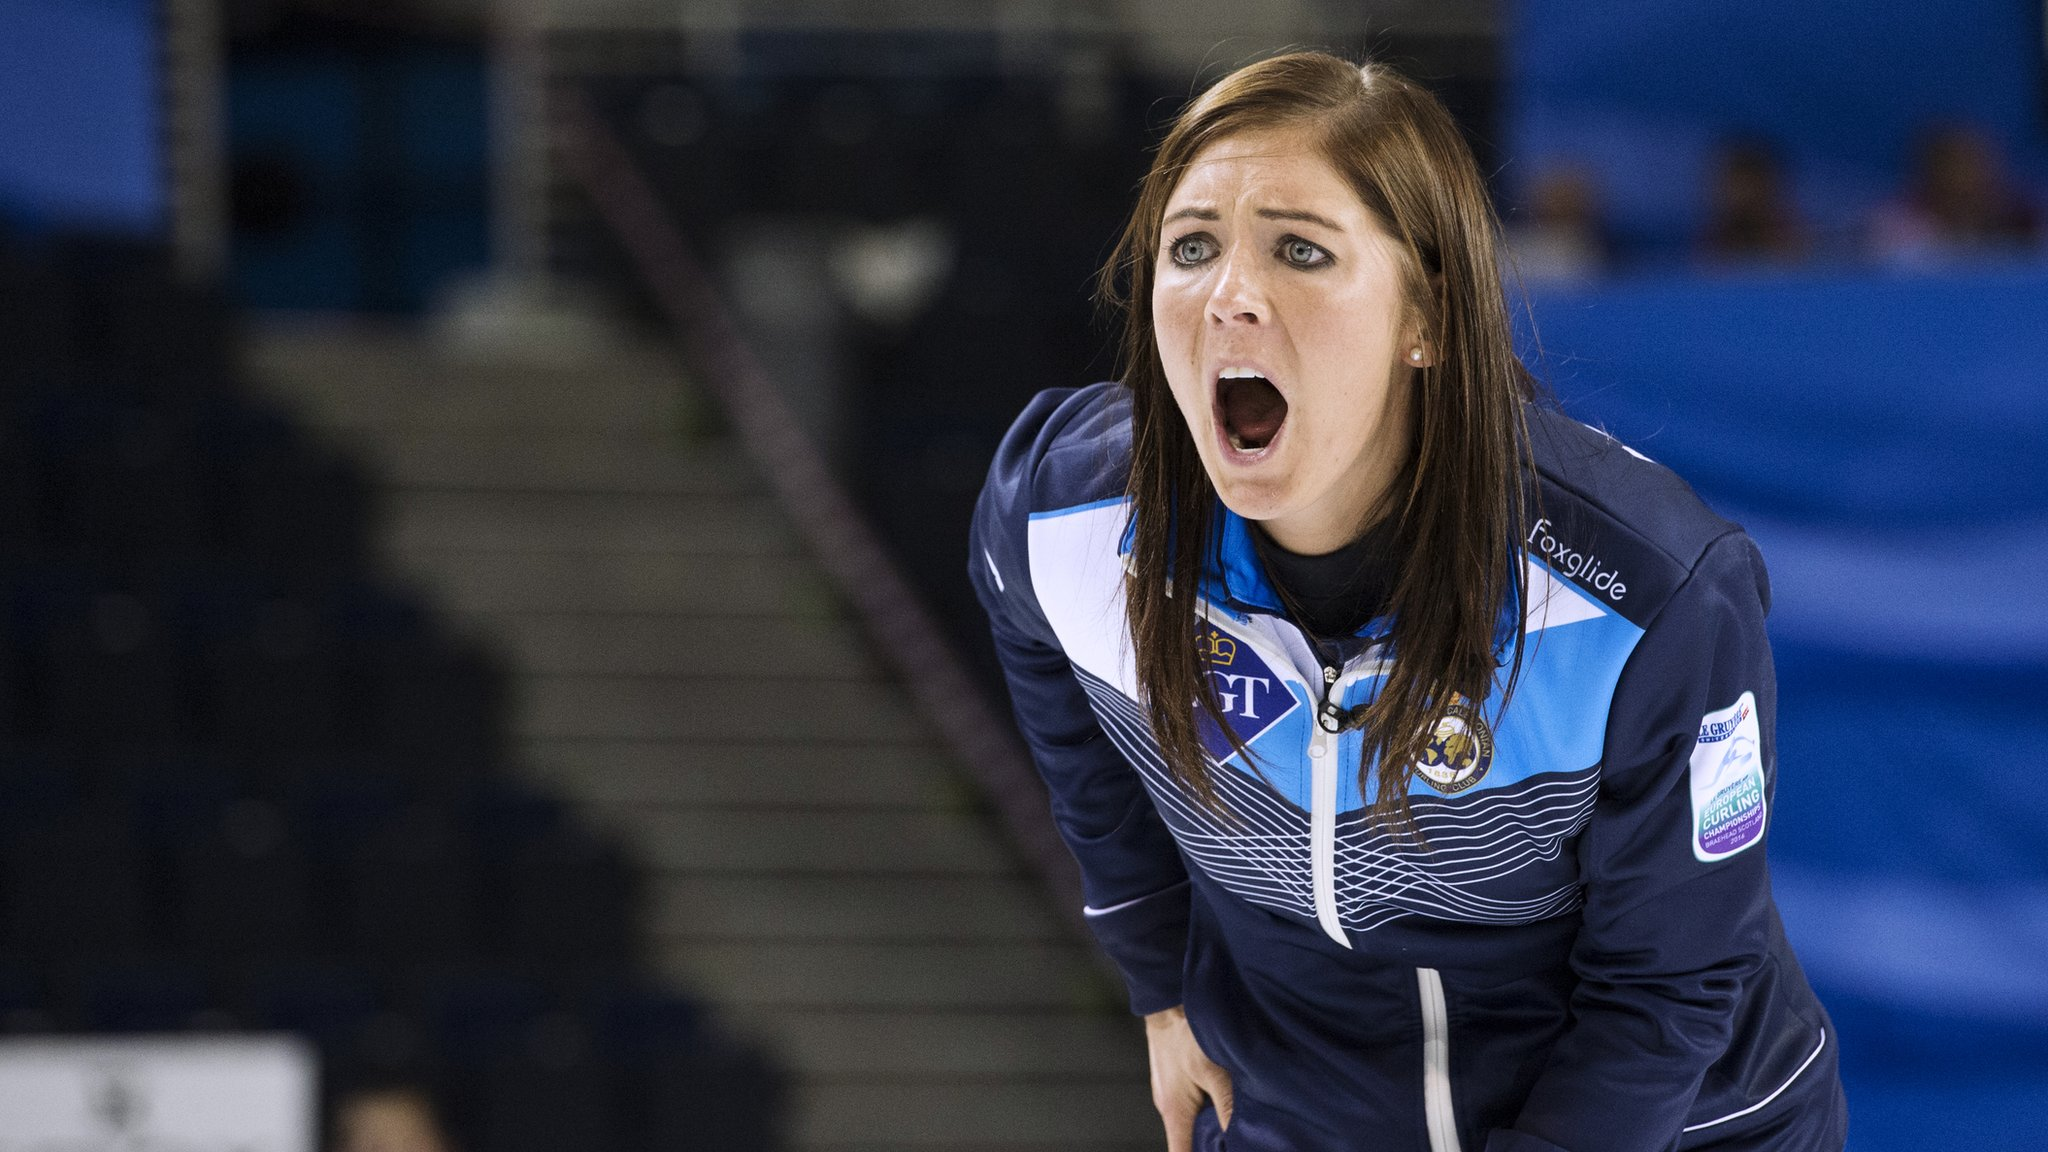 Curling: Eve Muirhead's Scots face struggle to qualify from group at European Champs